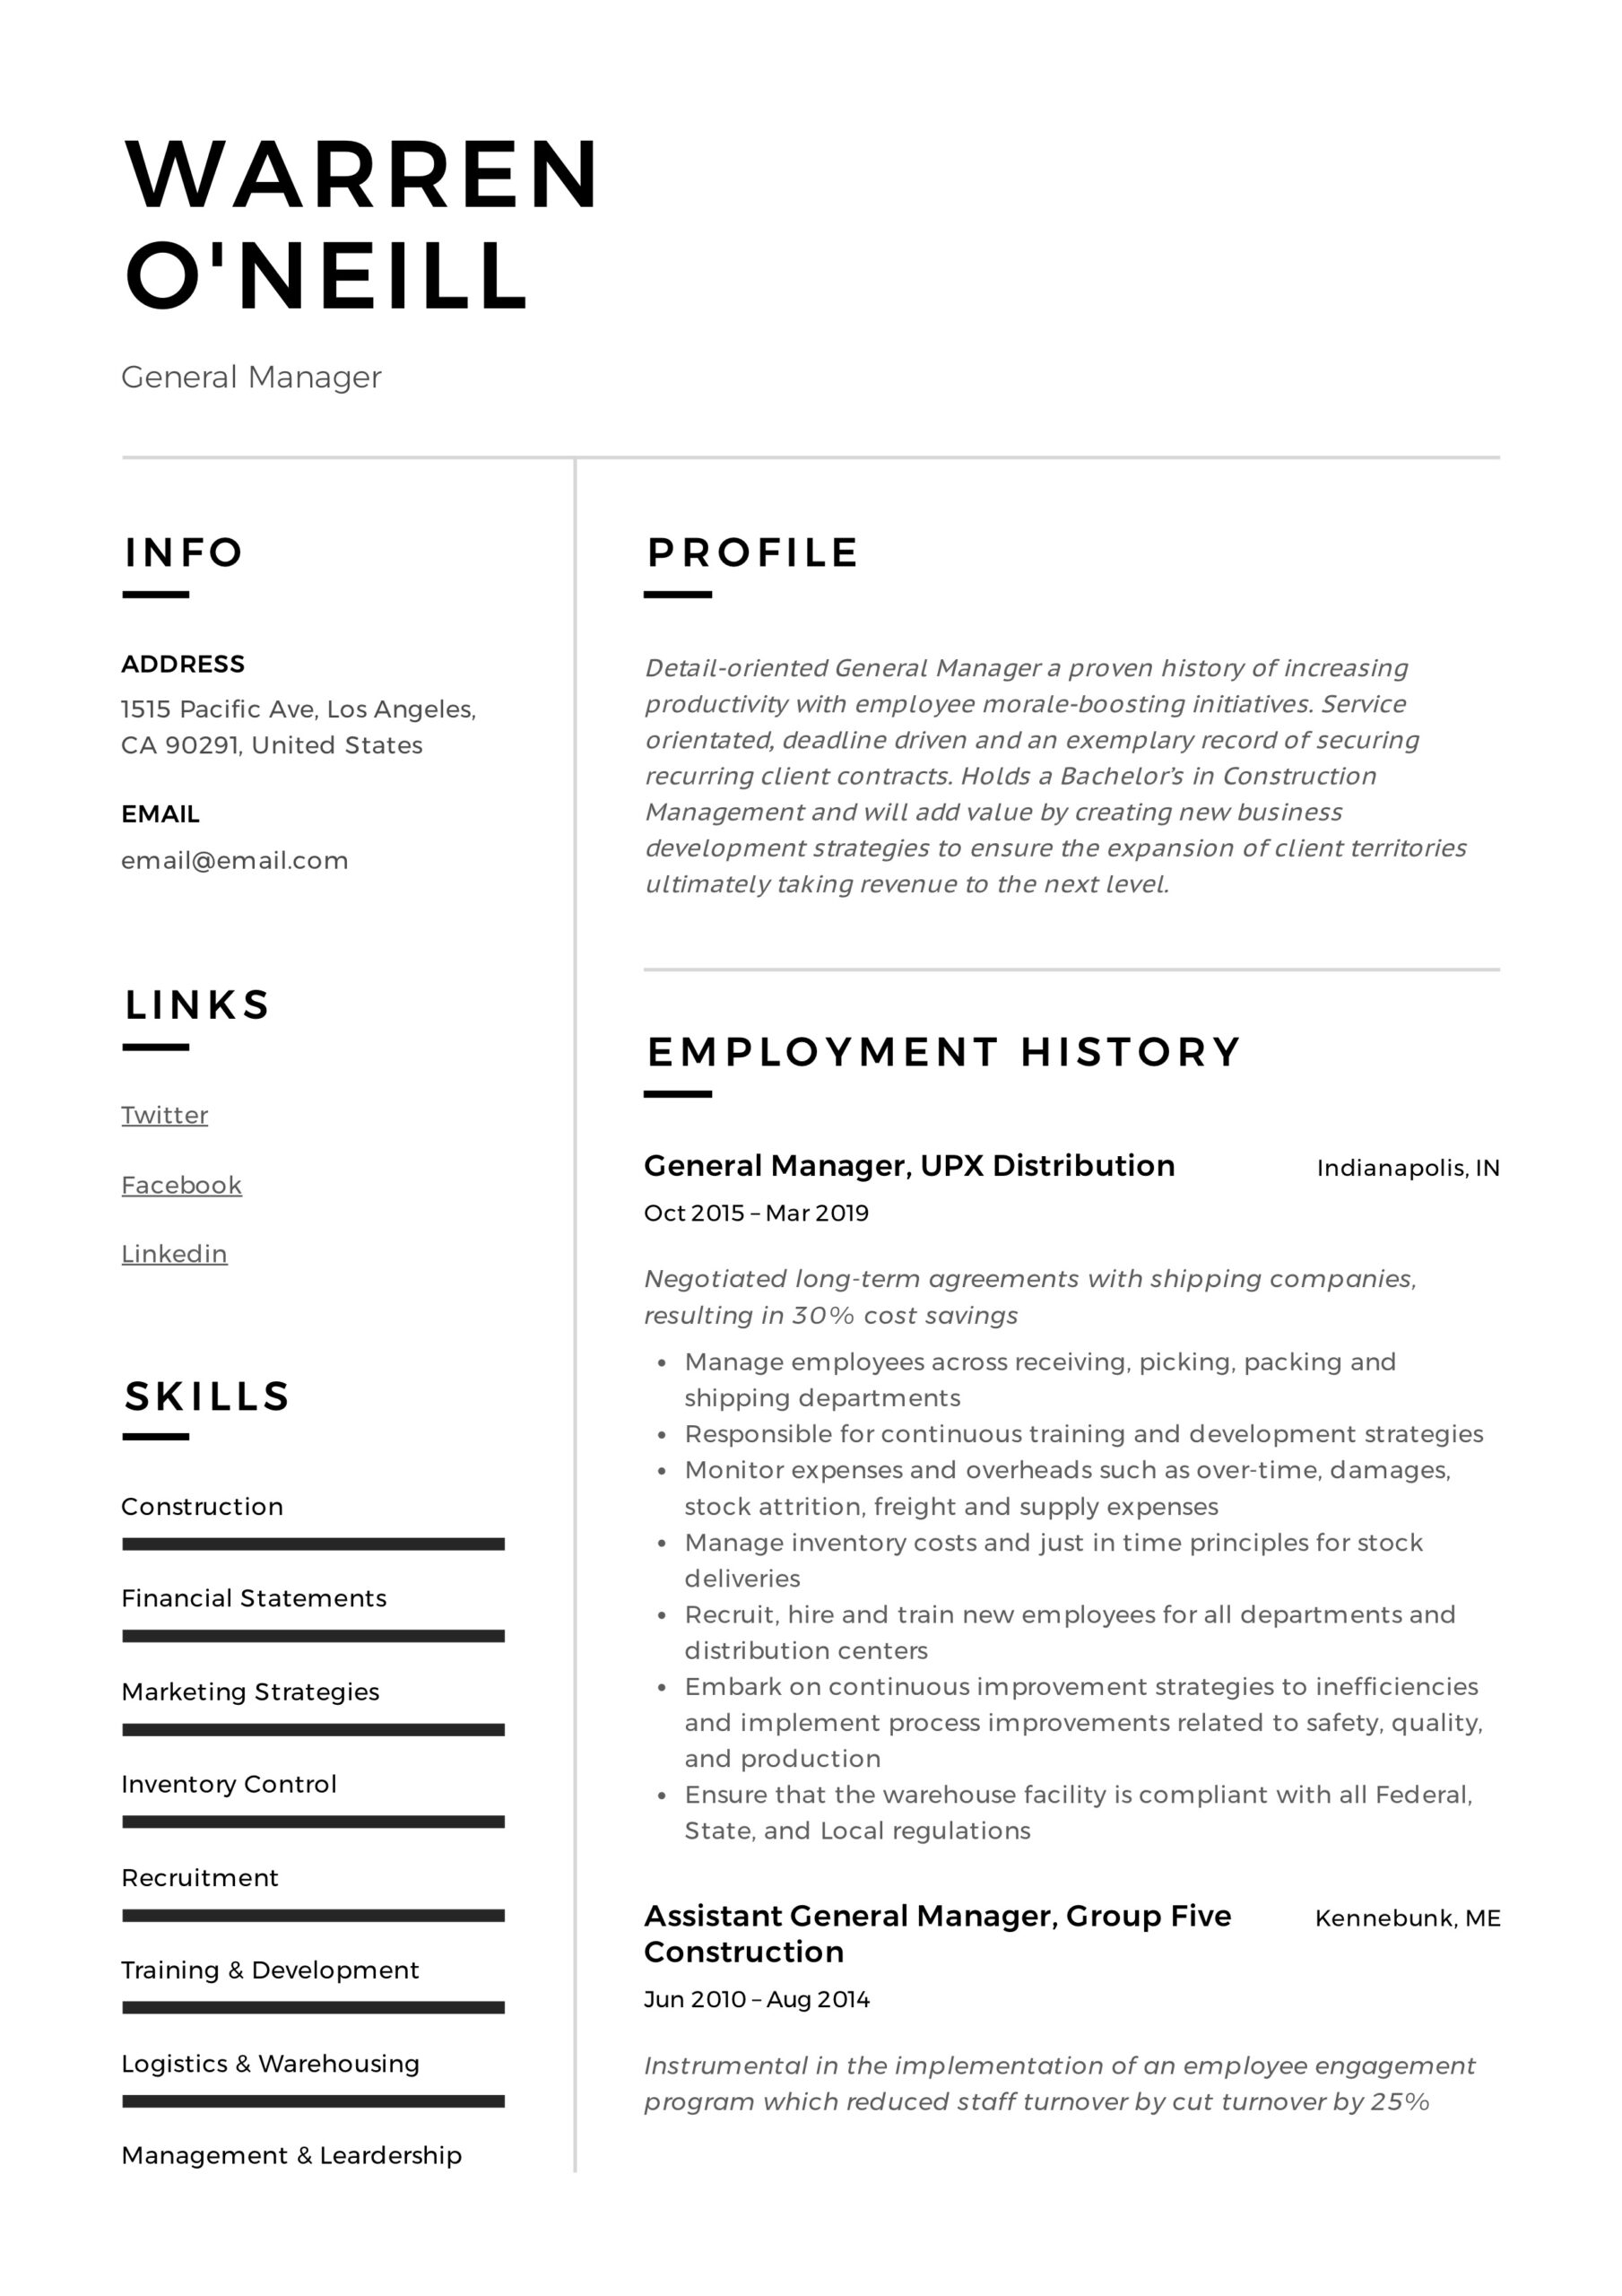 general manager resume writing guide examples pdf hotel management sample neill work Resume Hotel Management Resume Sample